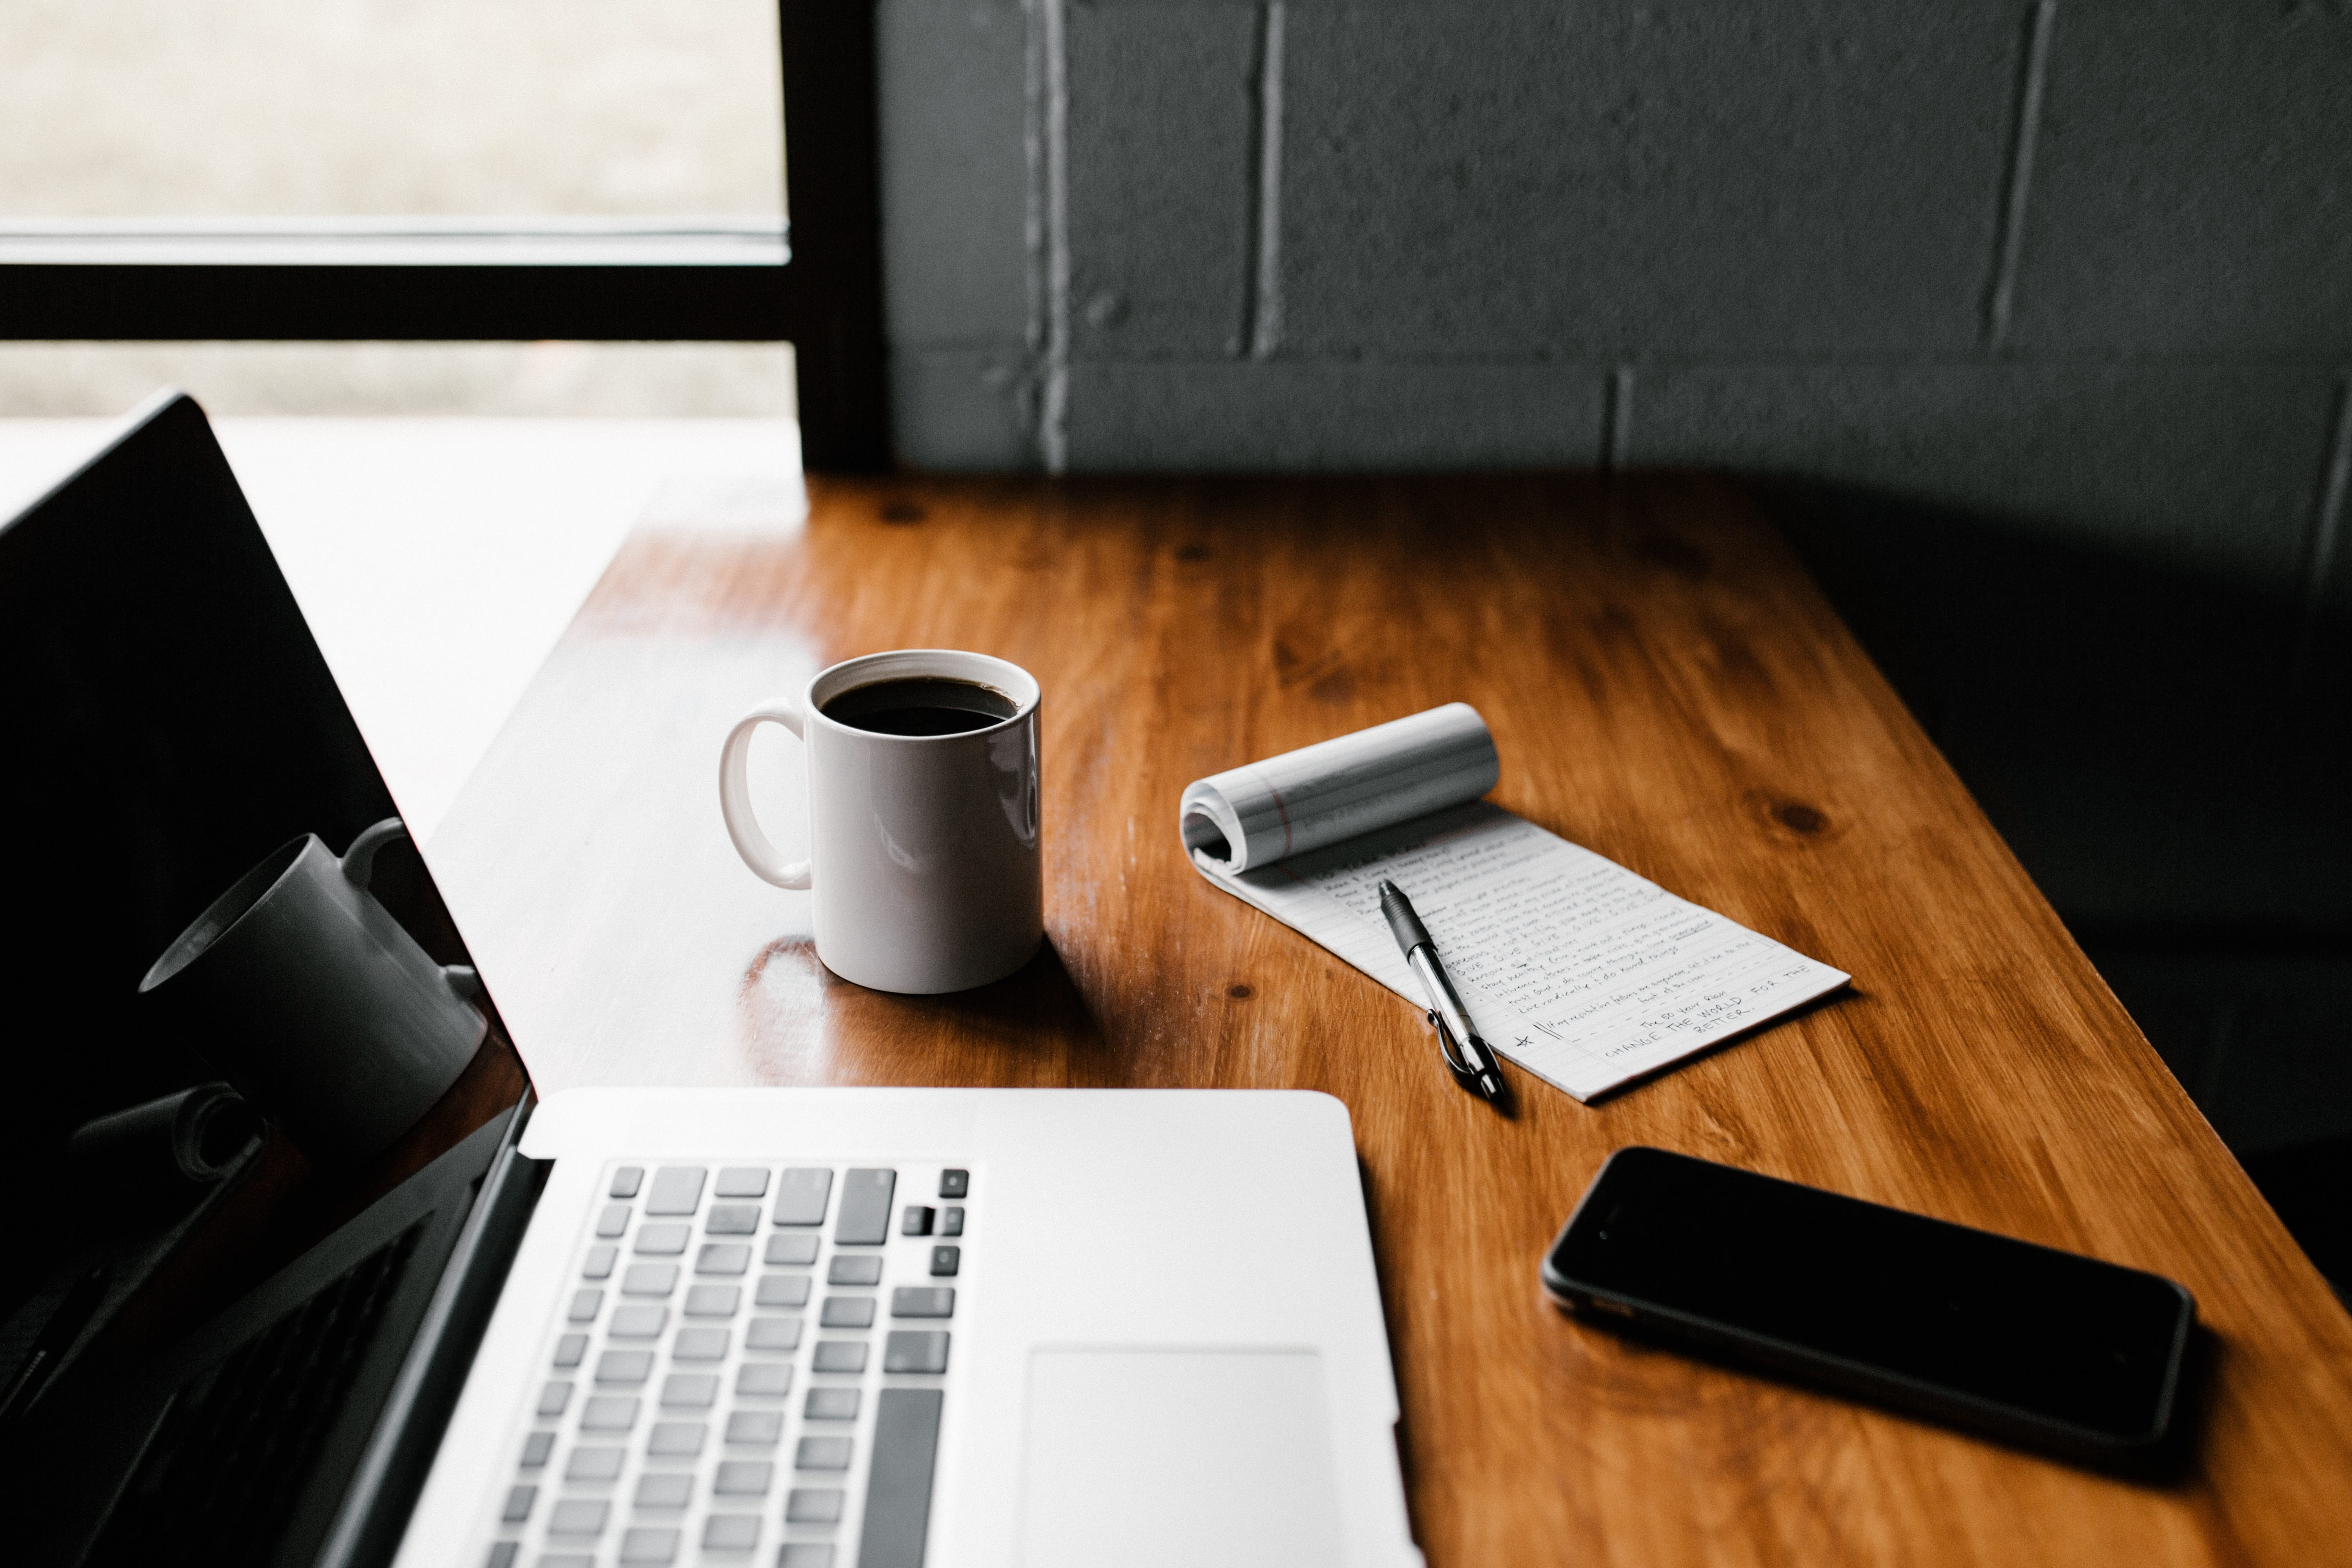 MacBook Pro, white ceramic mug,and black smartphone on table; image by Andrew Neel, via Unsplash.com.